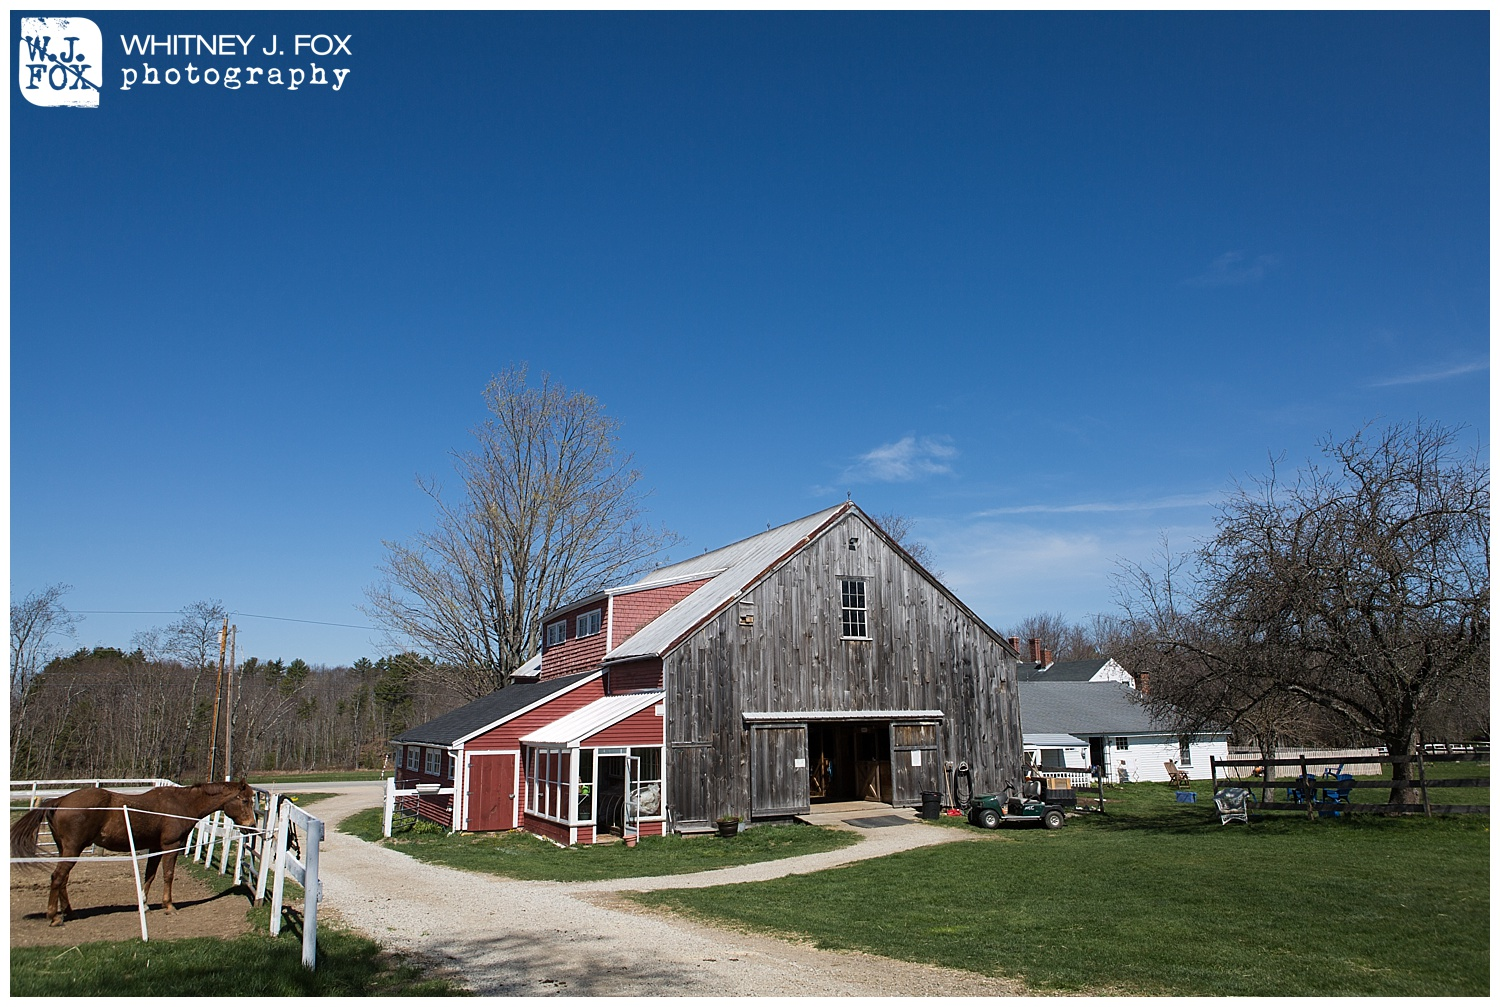 homestead_rest_and_be_thankful_farm_lyman_maine_rustic_wedding_venue_whitney_j_fox_weddings_1358.jpg